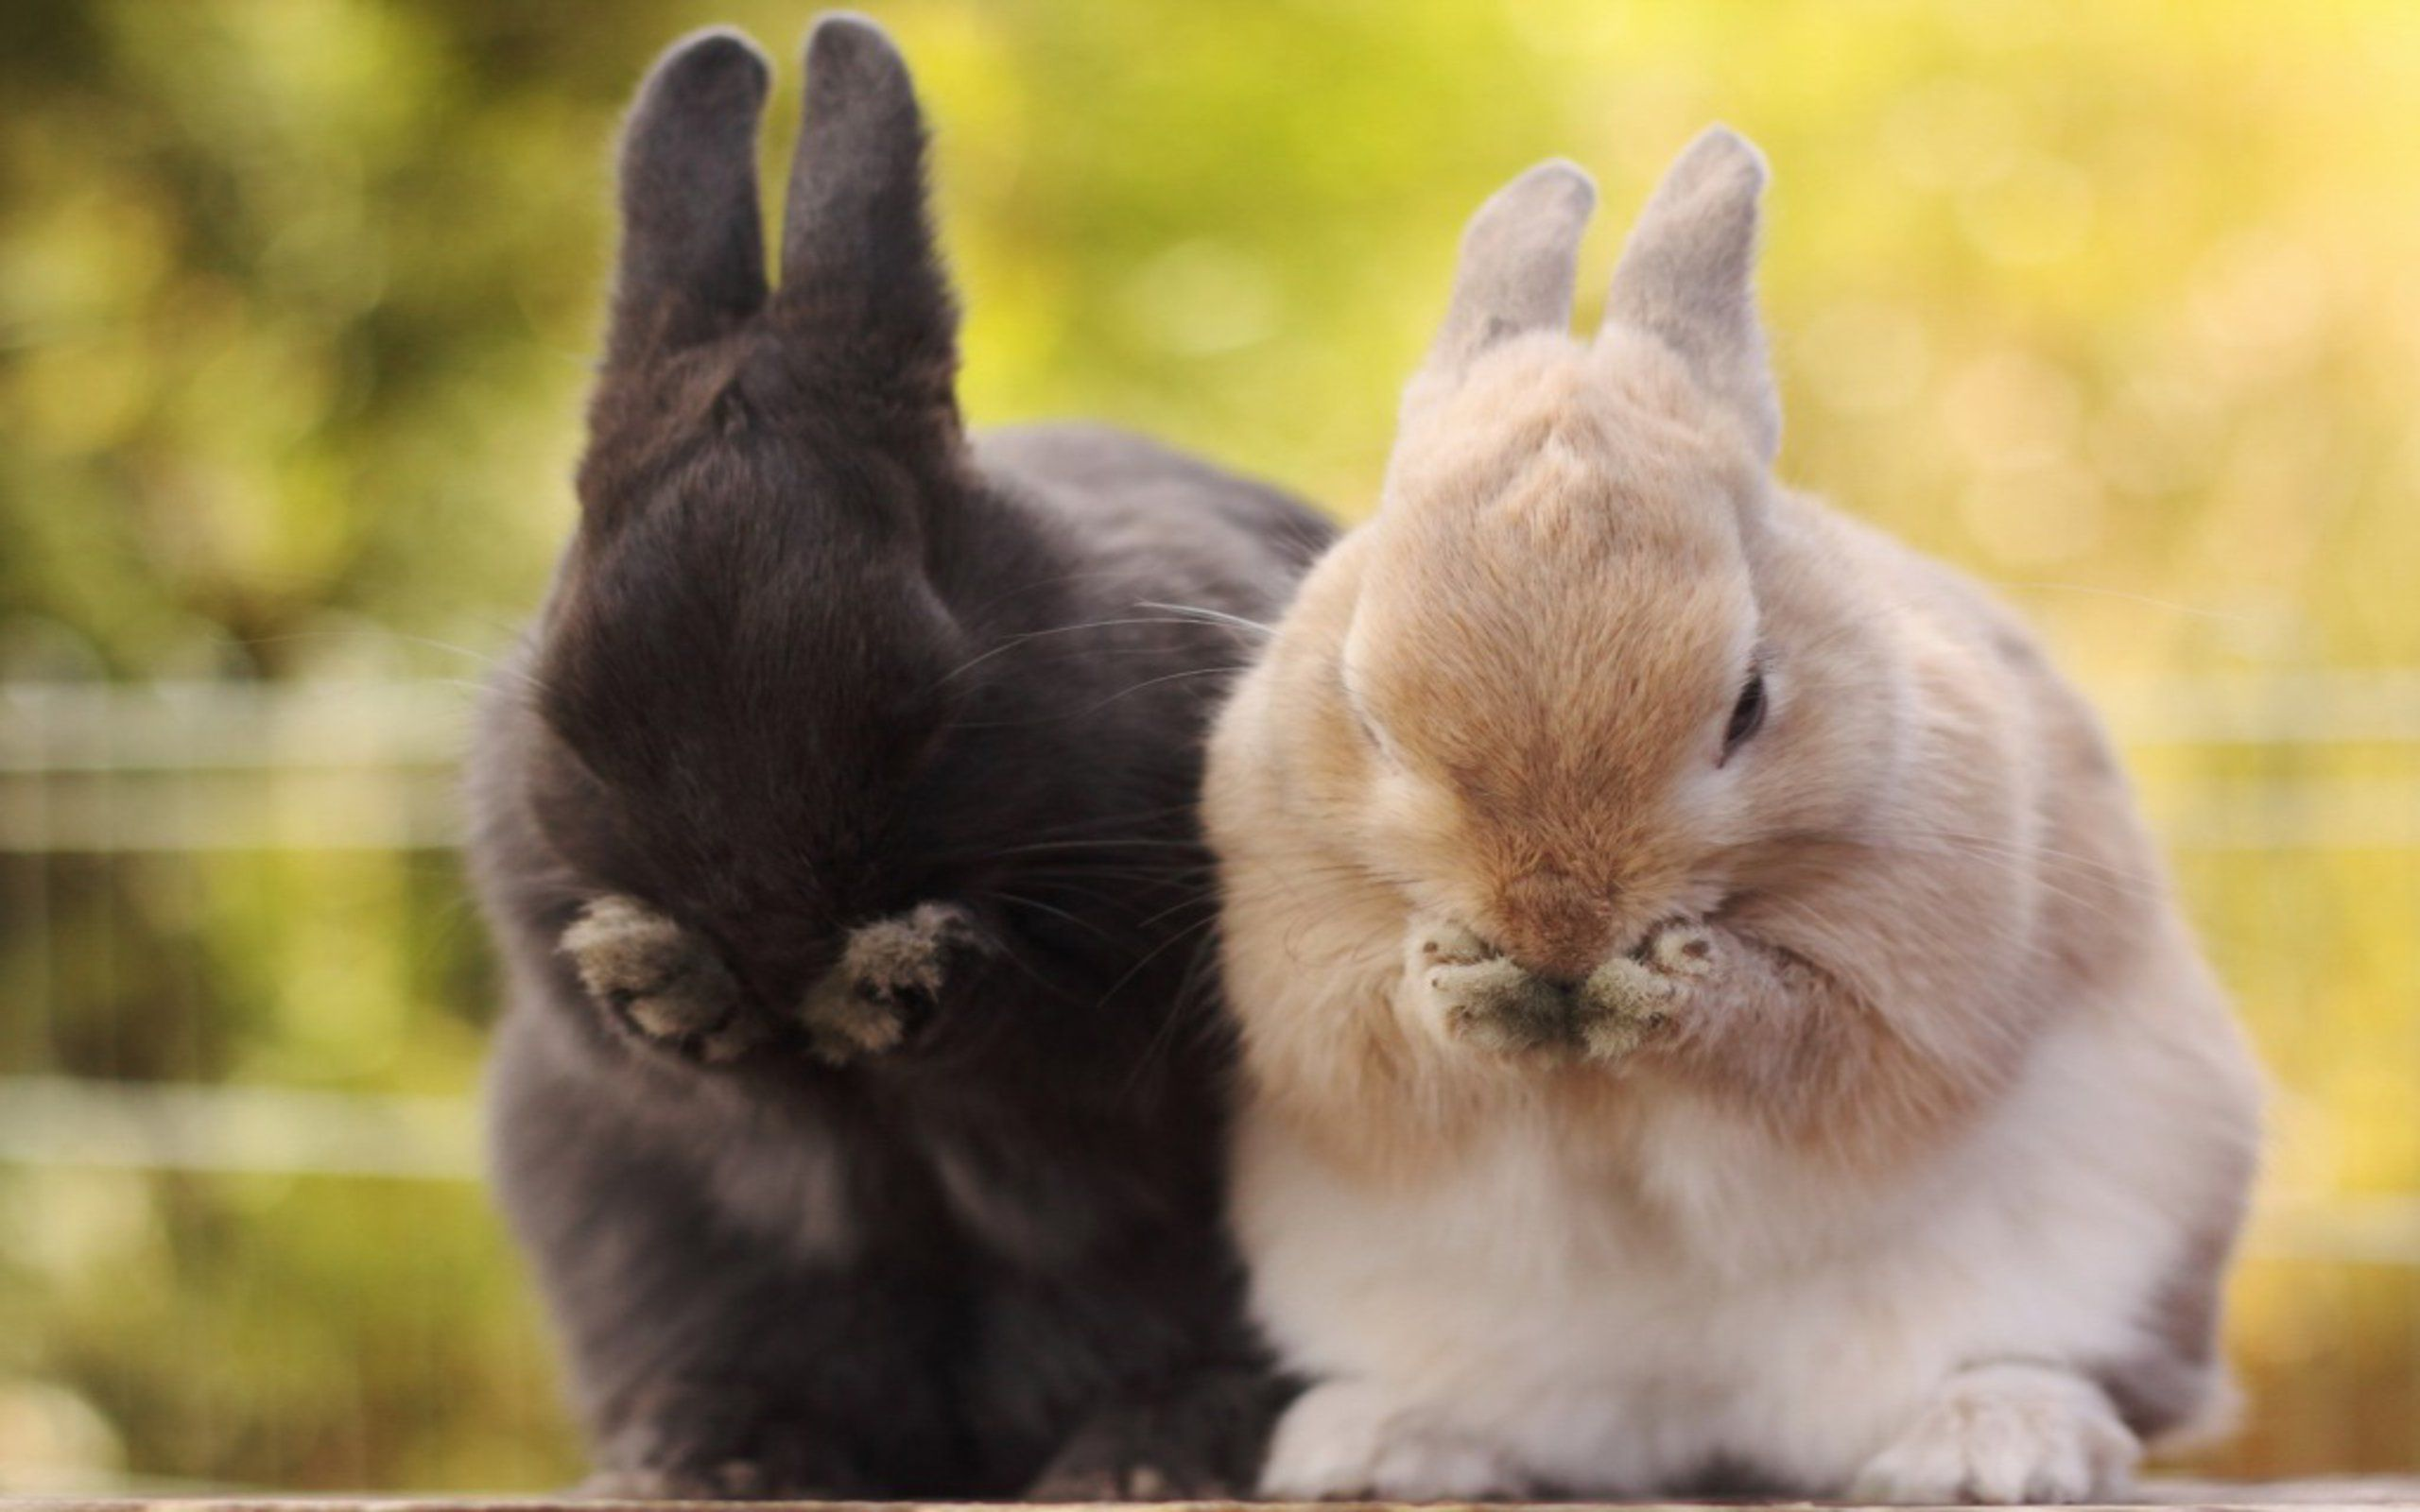 Pin by Keith on Cute Cute bunny pictures